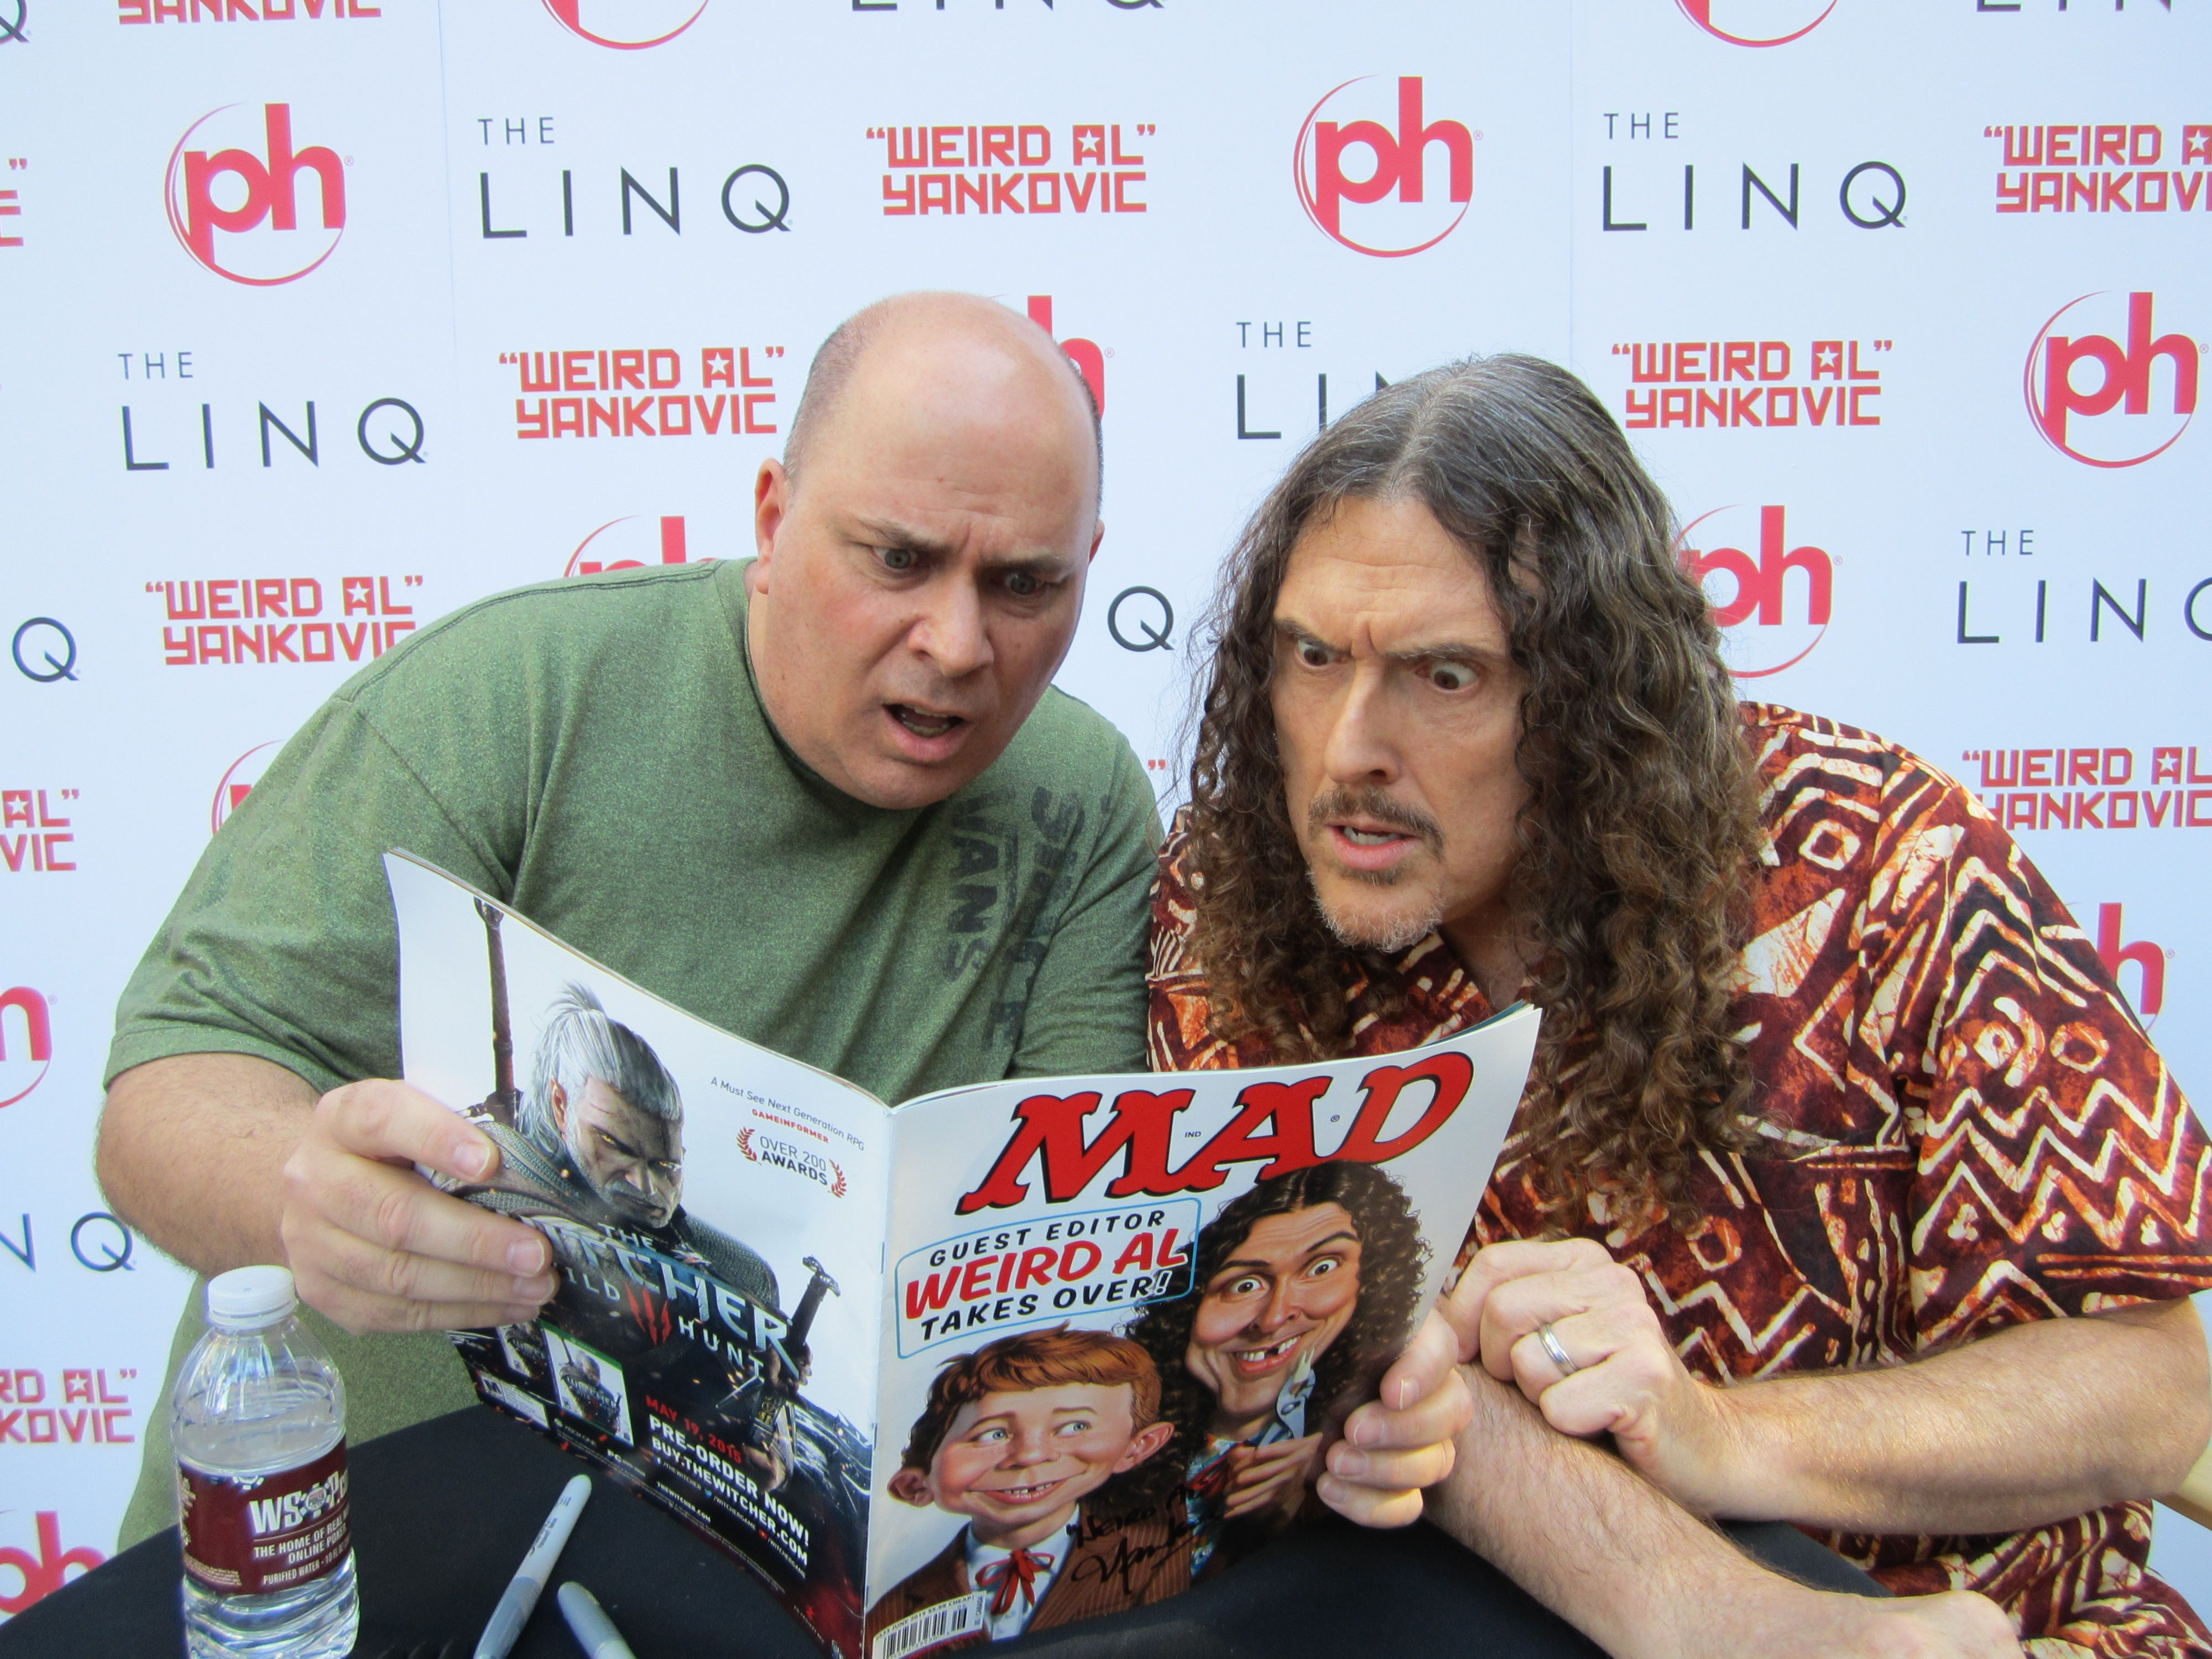 Meeting Weird AL! Video game covers, Game artwork, Video